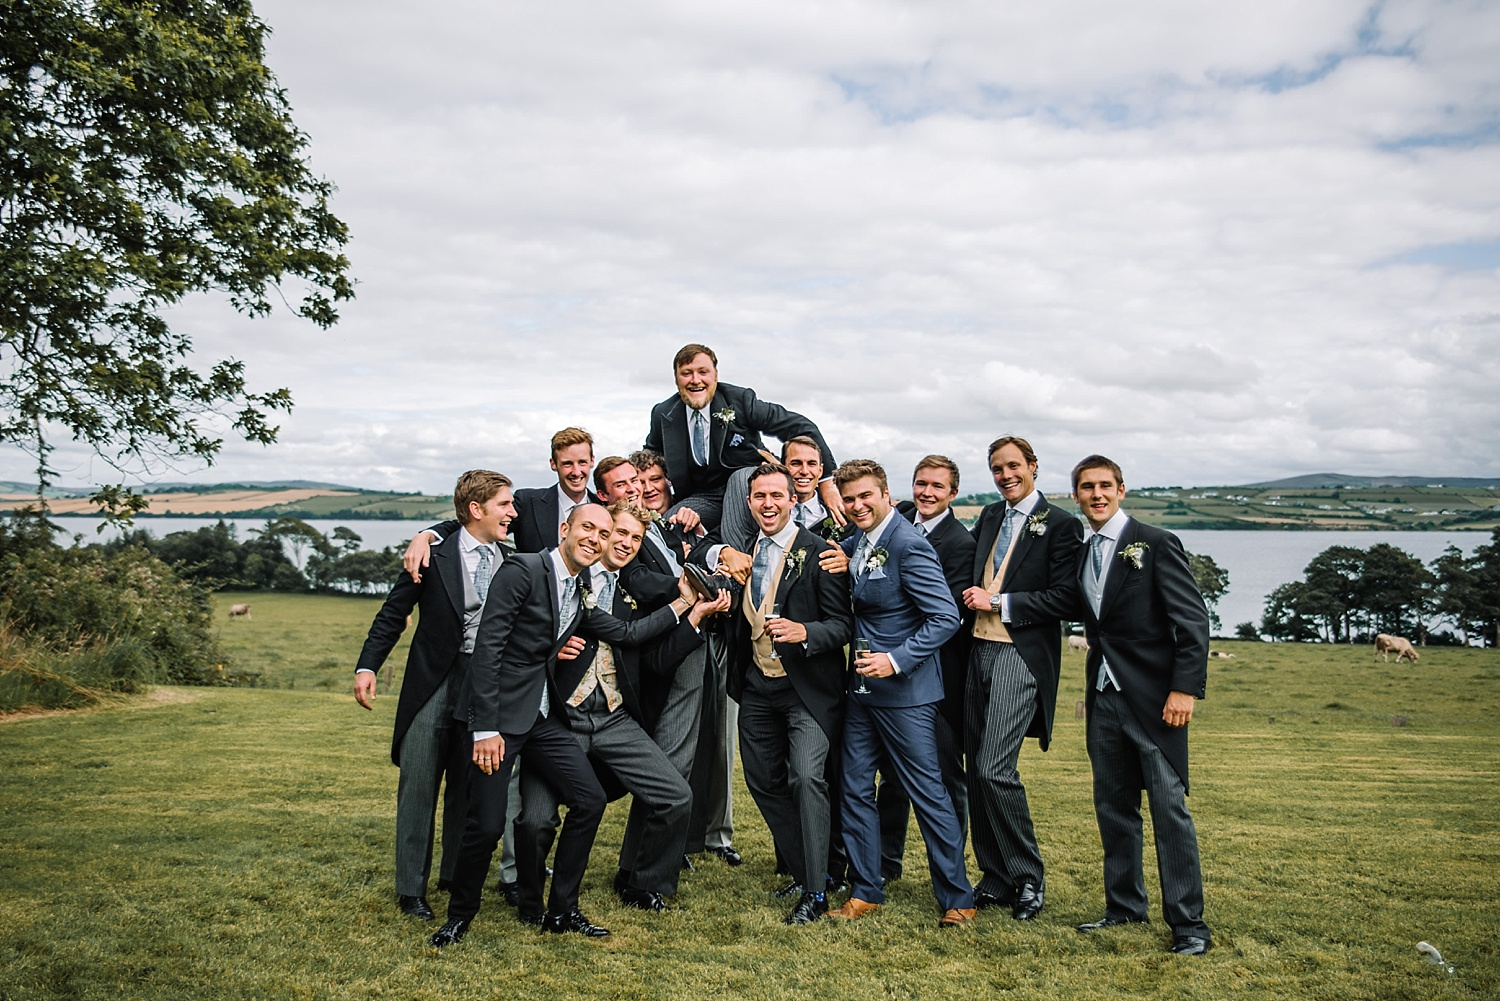 Irish_outdoor_country_DIY_Wedding_0098.jpg